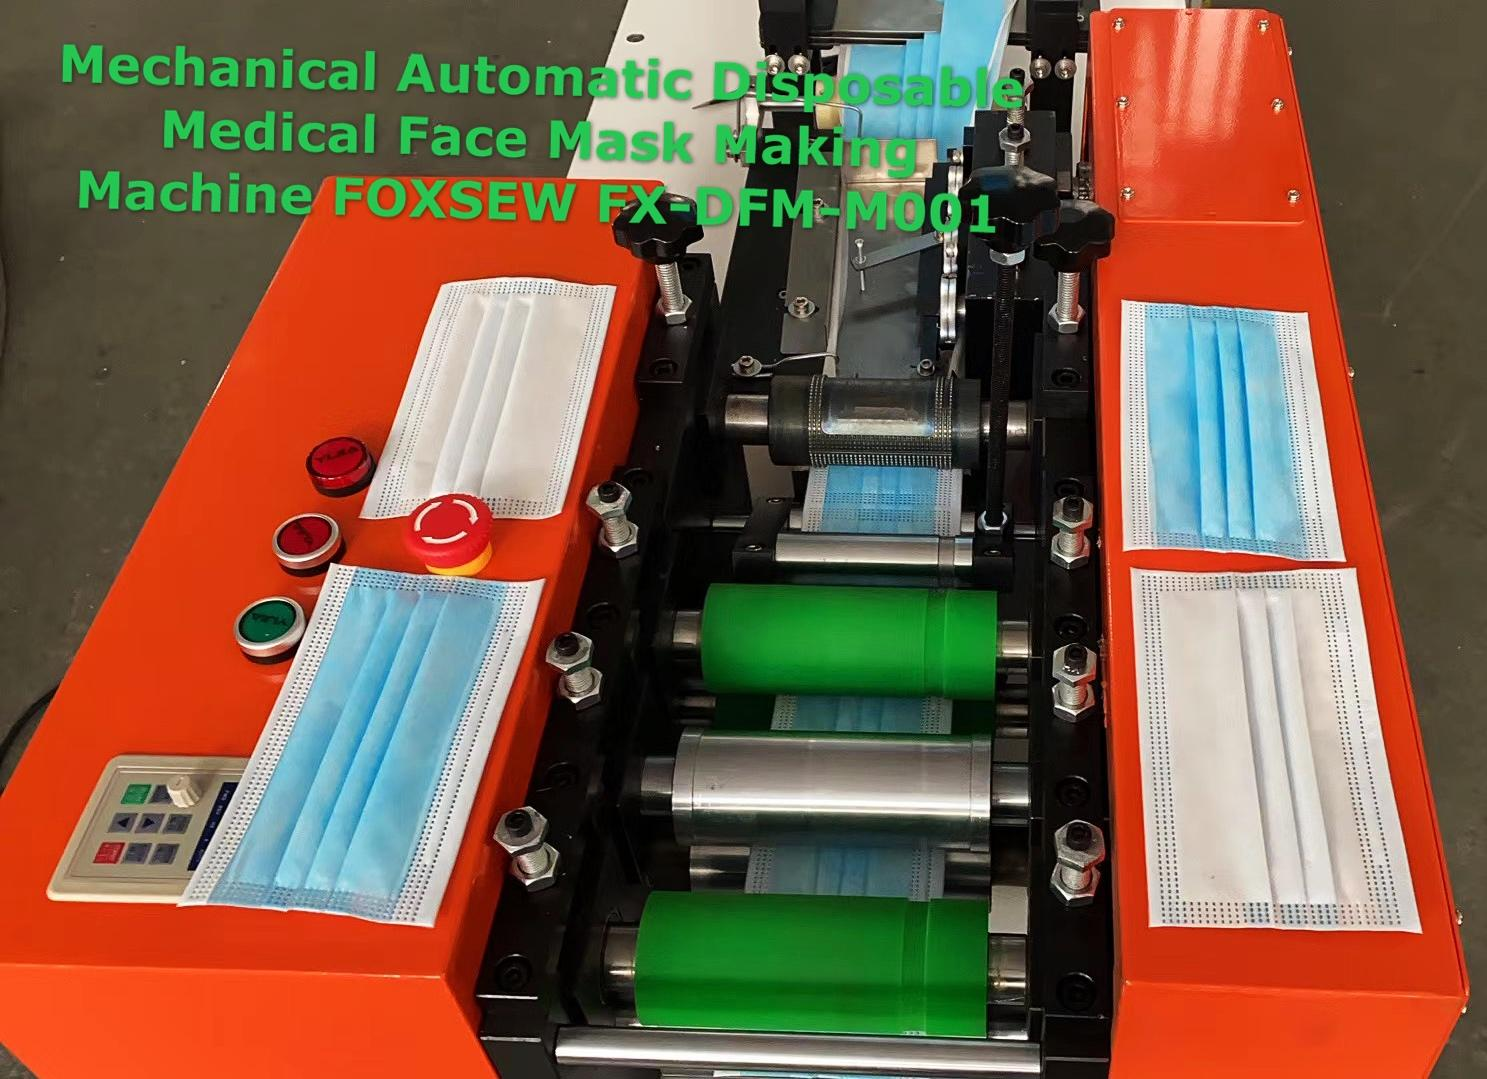 Mechnical Automatic Disposable Medical Face Mask Making Machine -2